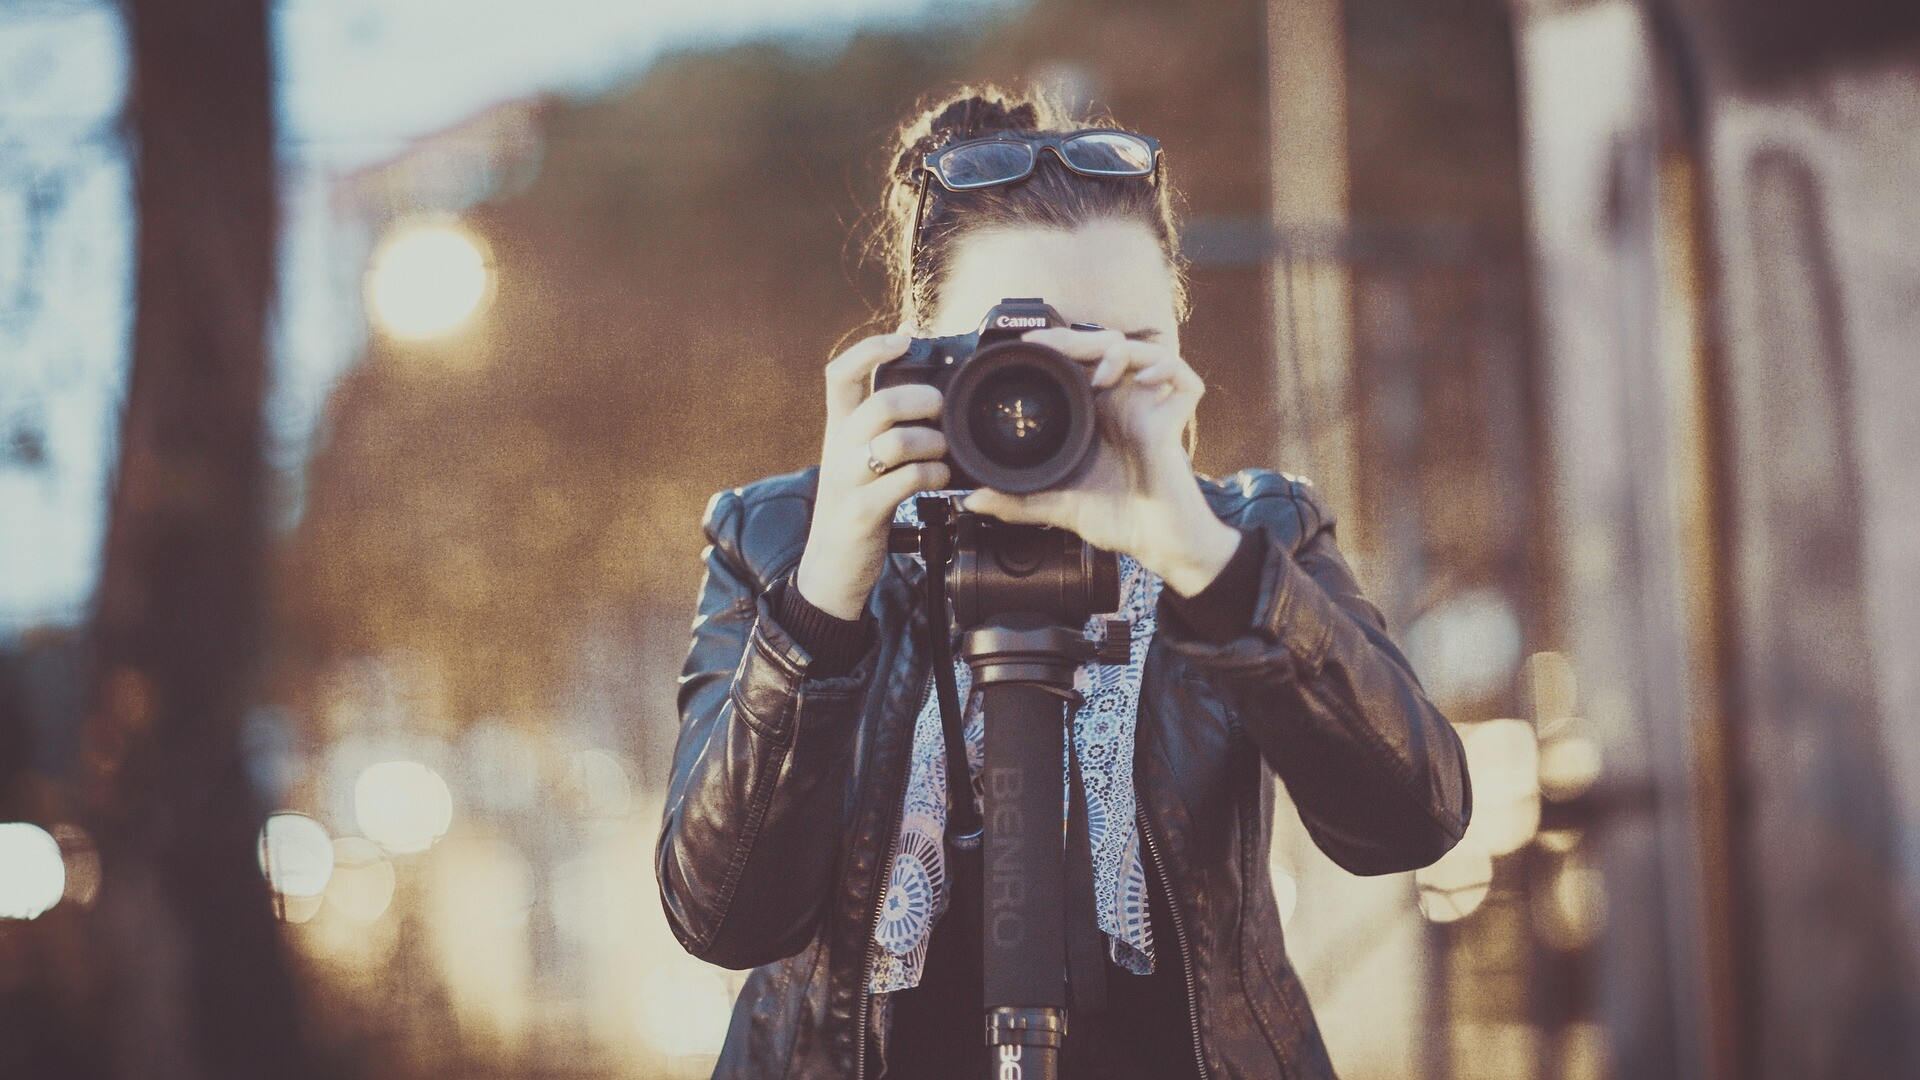 What is the dress code for a photographer?